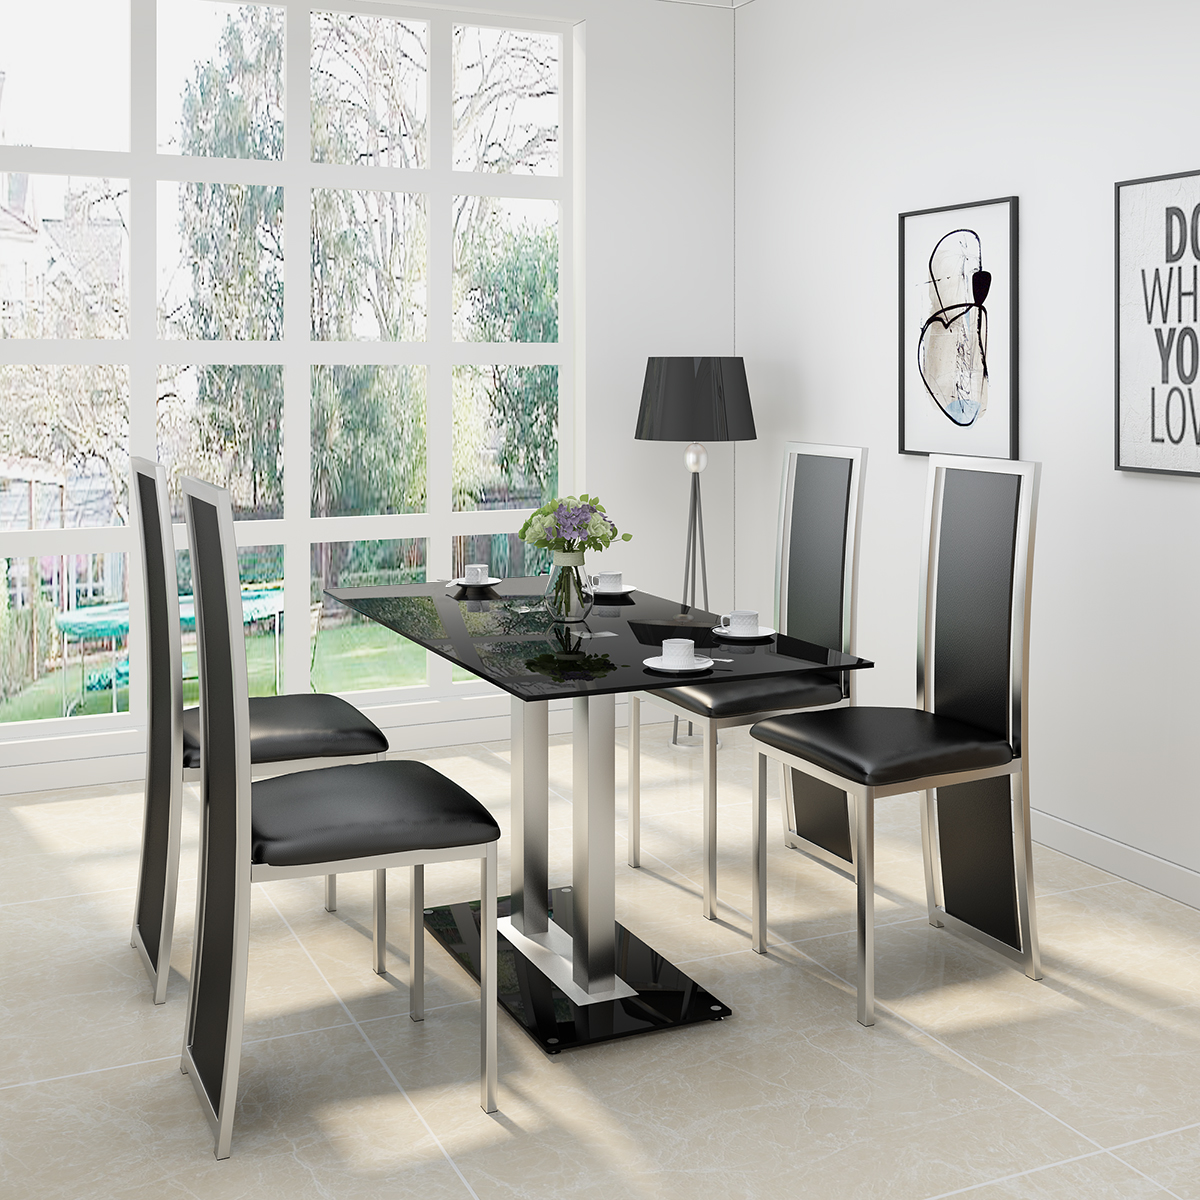 PANANA GLASS DINING TABLE SET WITH 4/ 6 FAUX LEATHER CHAIRS BLACK /WHITE Home Kitchen Furniture Fast Shipping